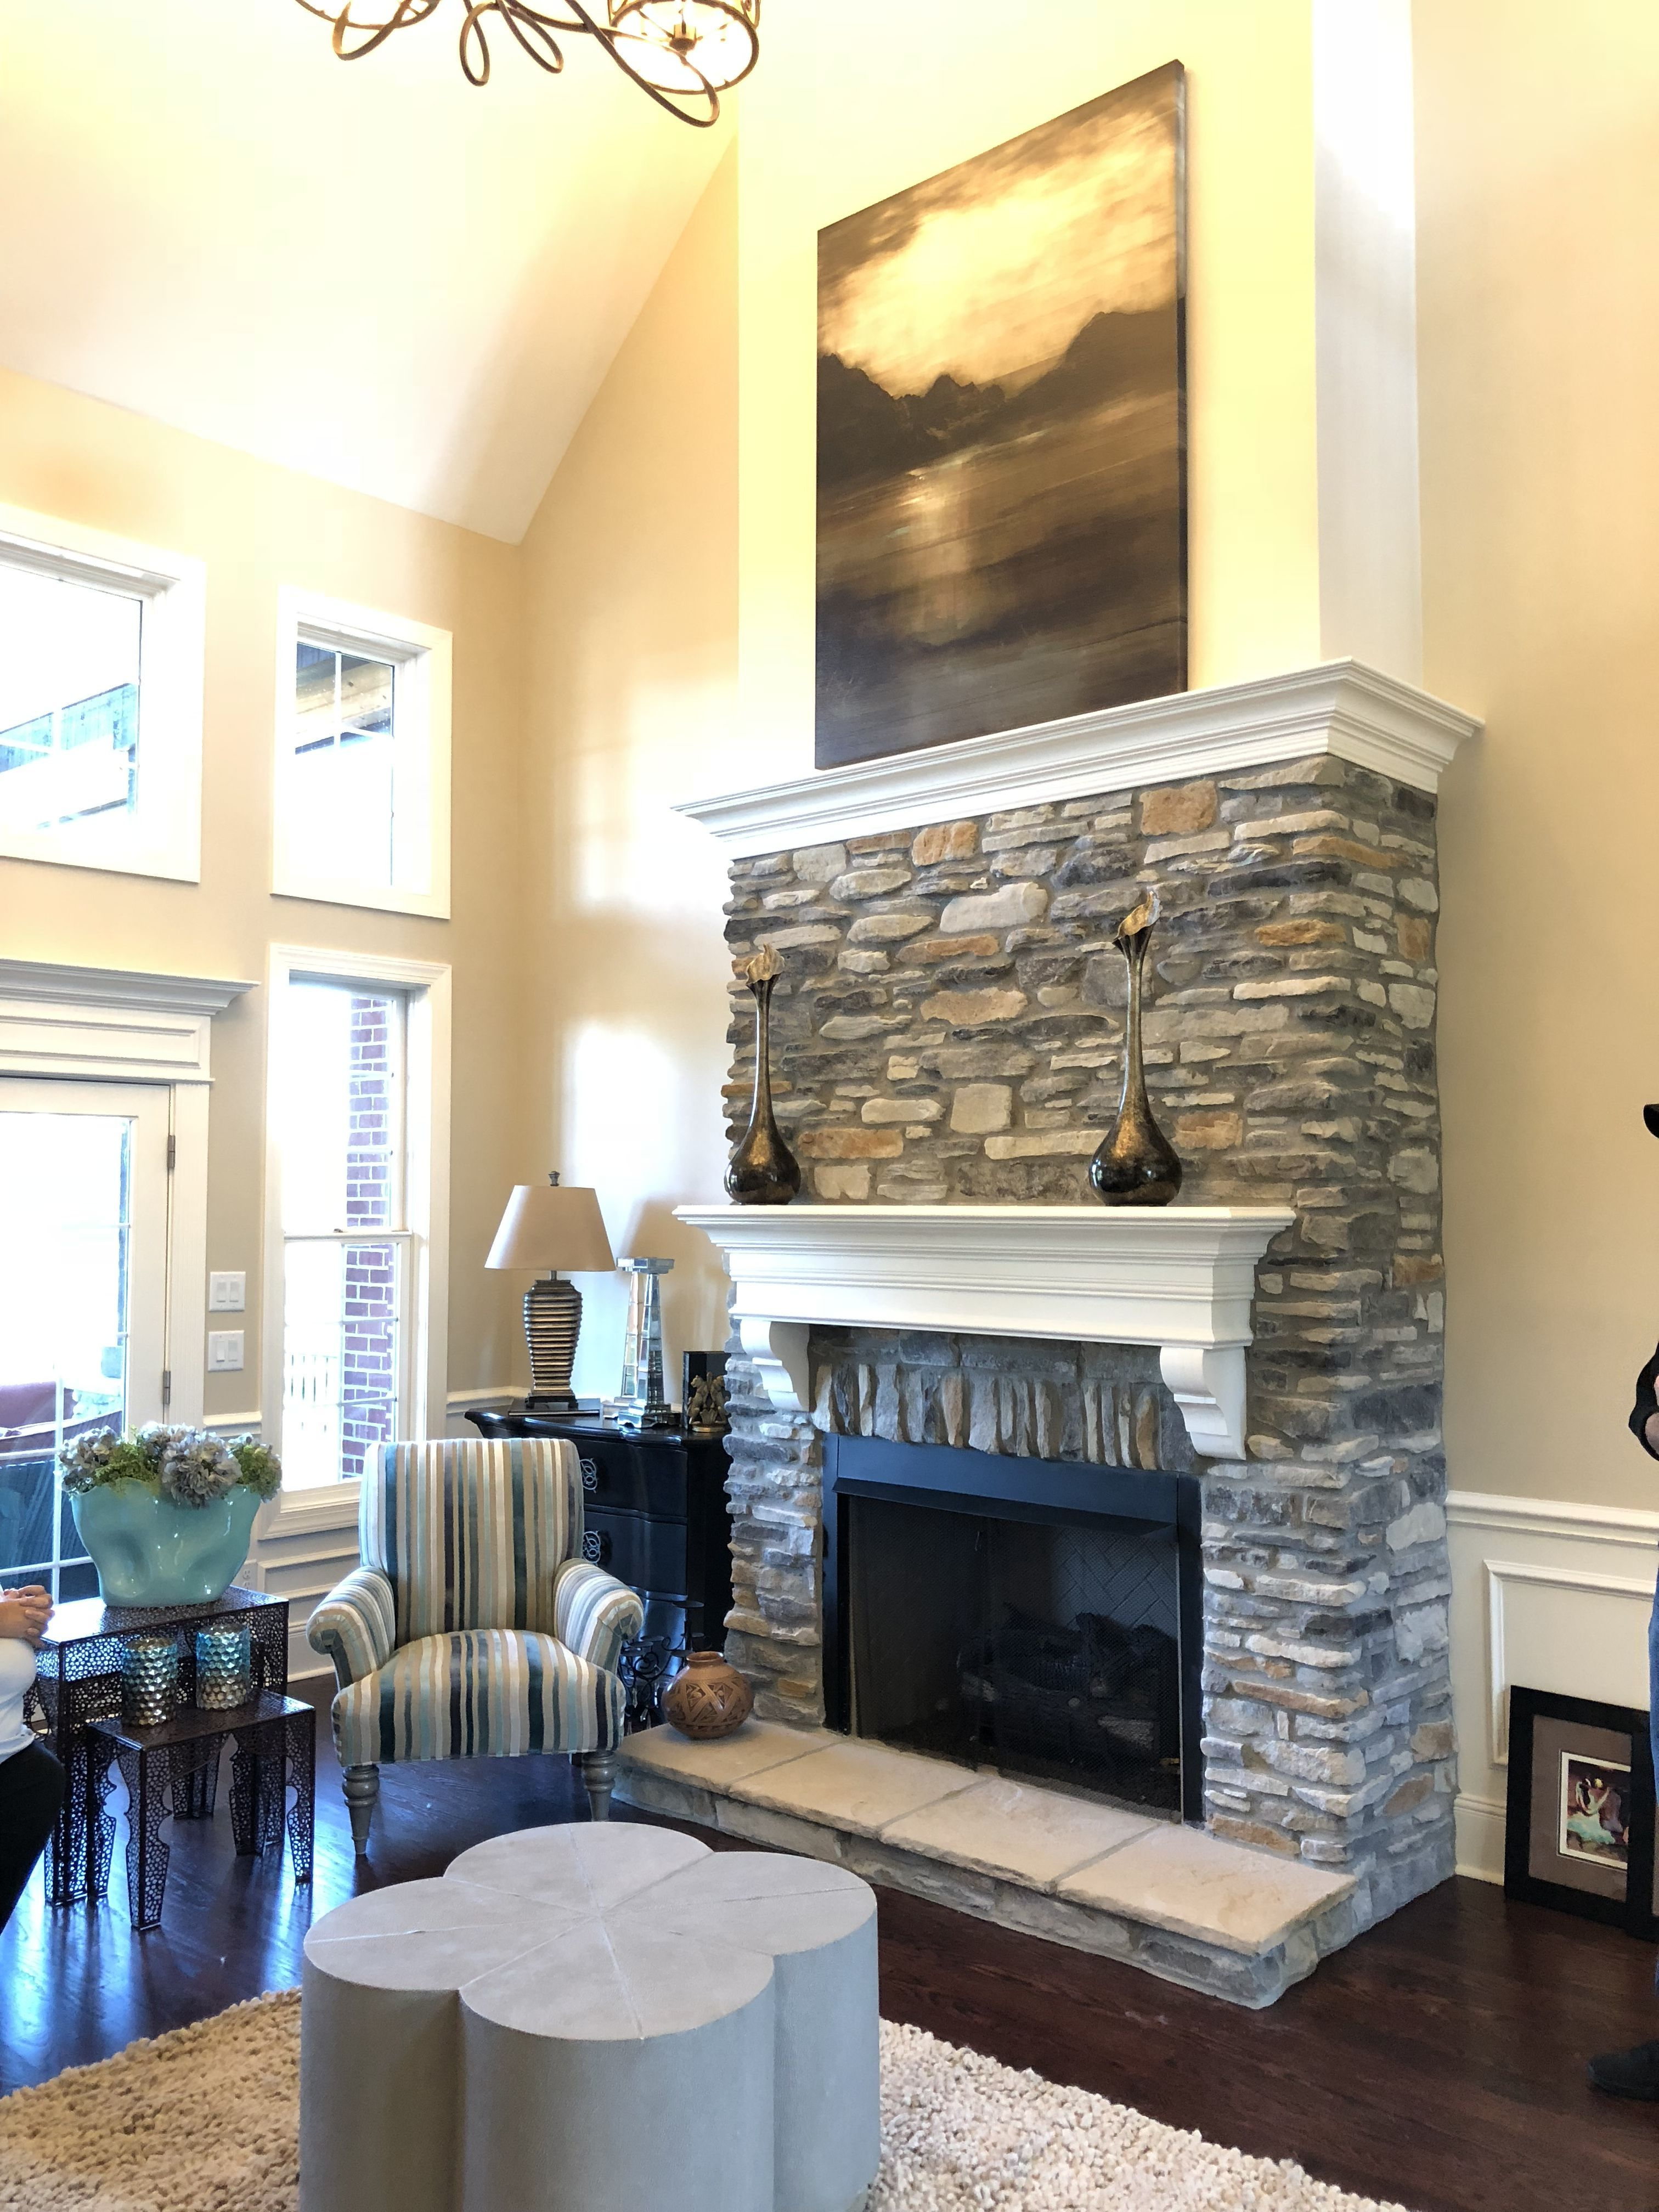 Decoration inspiring corner stone fireplace mantels surrounds with slate fireplace mantel more chimneybreast fireplaceideas